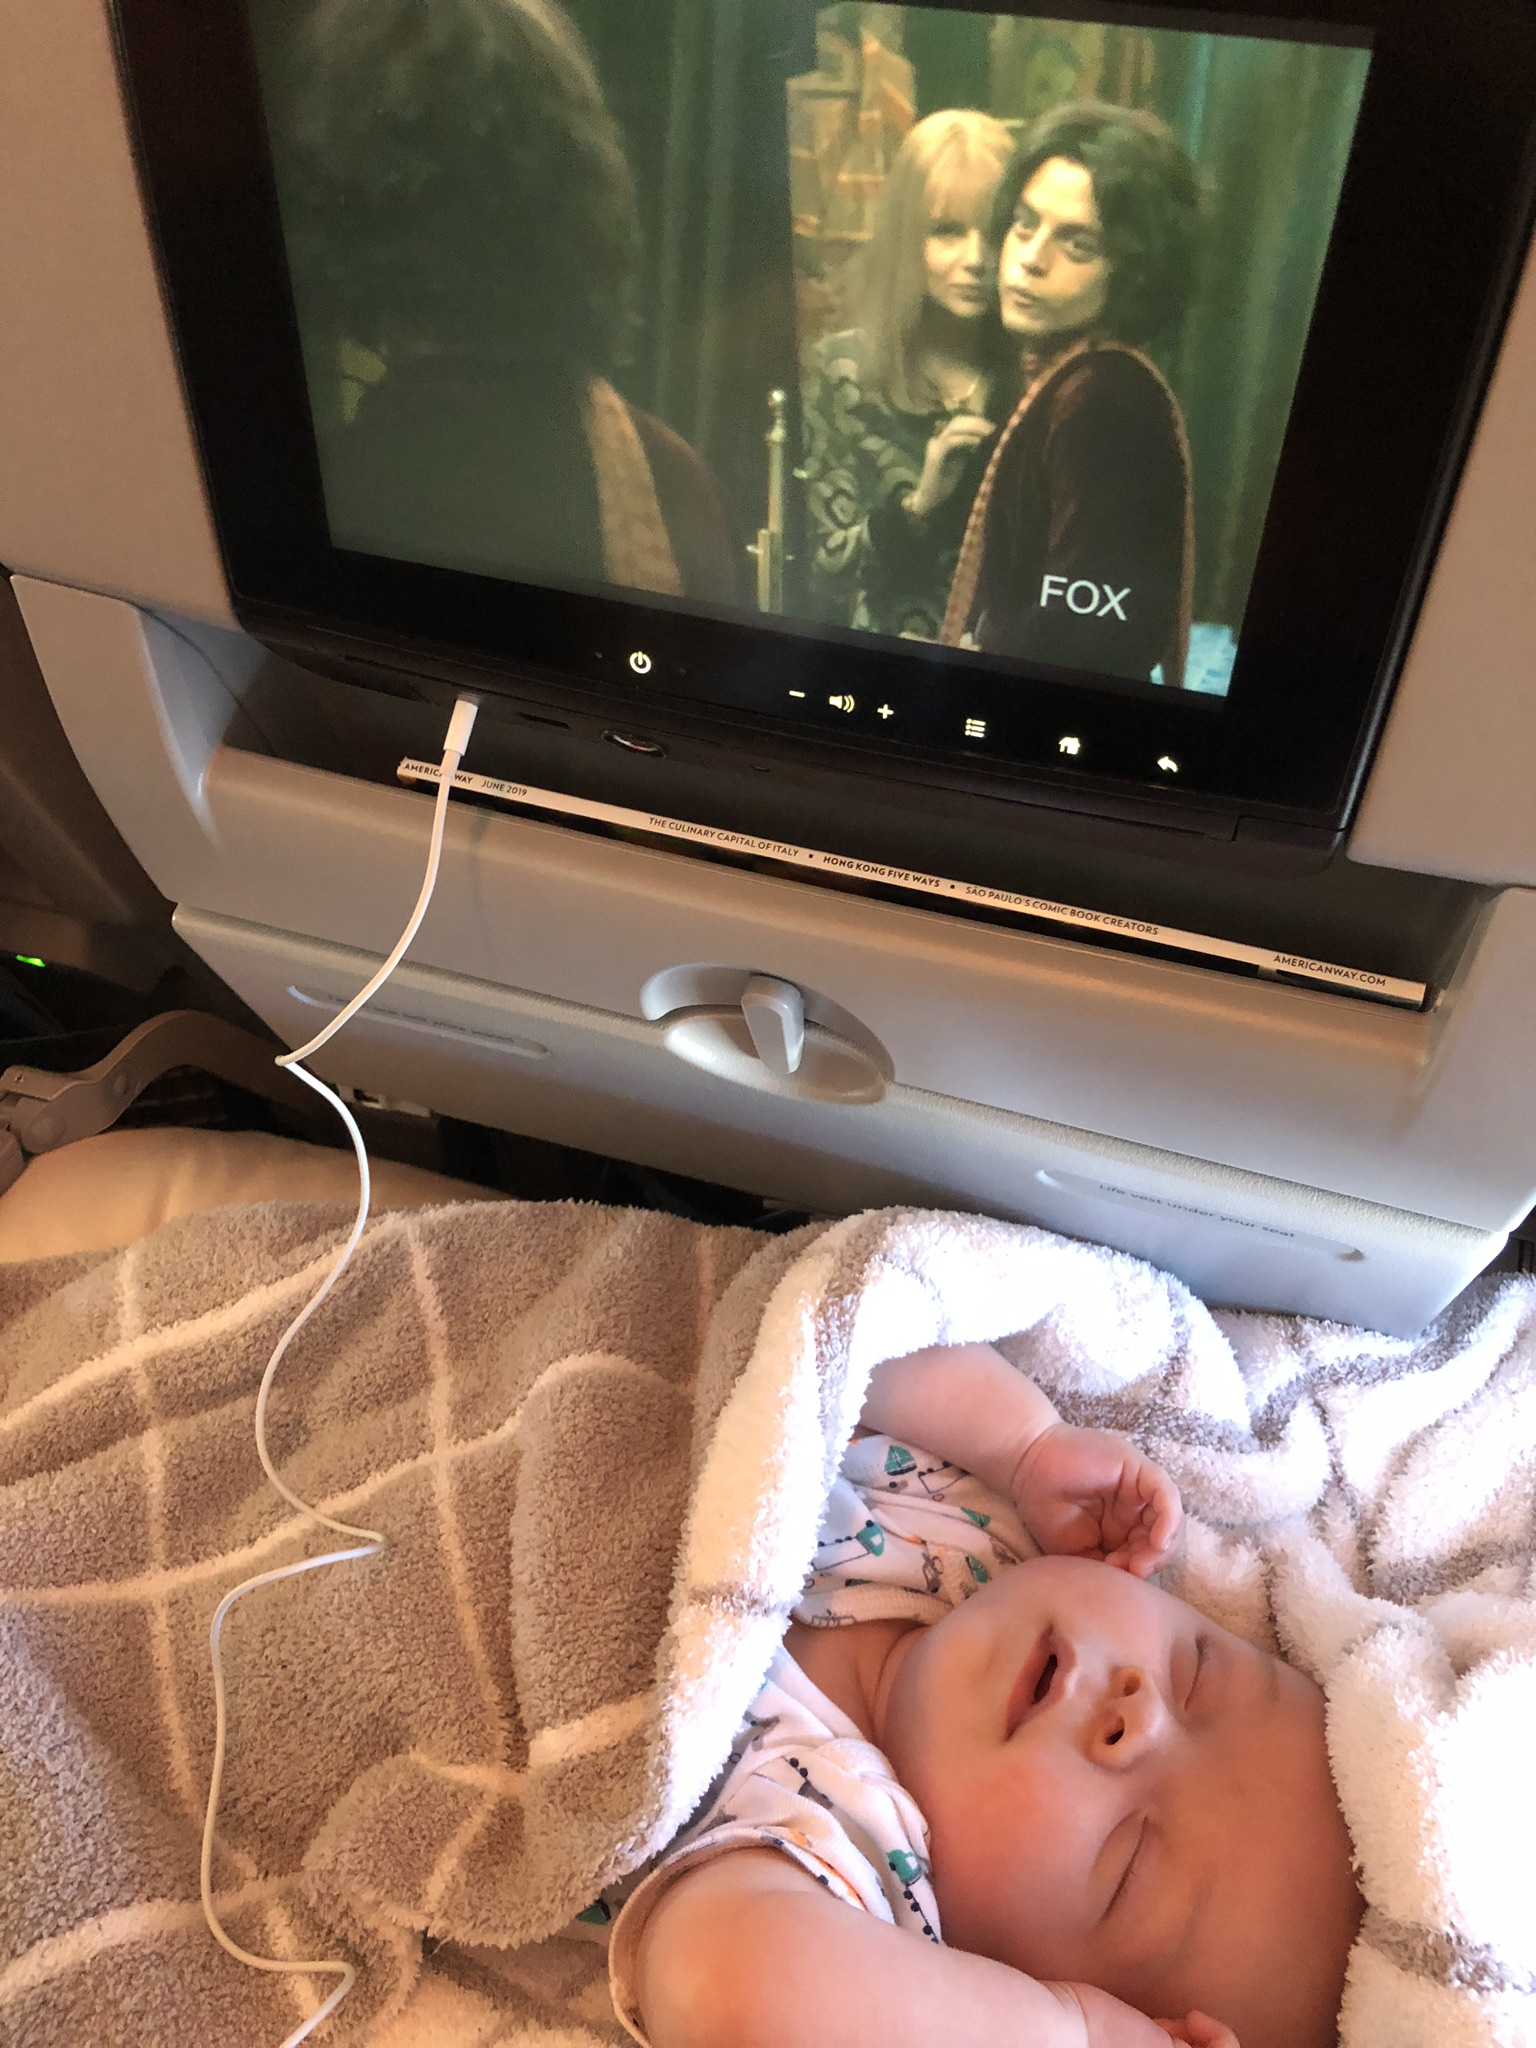 On the flight to Florida, I even got to watch a movie (Bohemian Rhapsody) once he fell asleep!